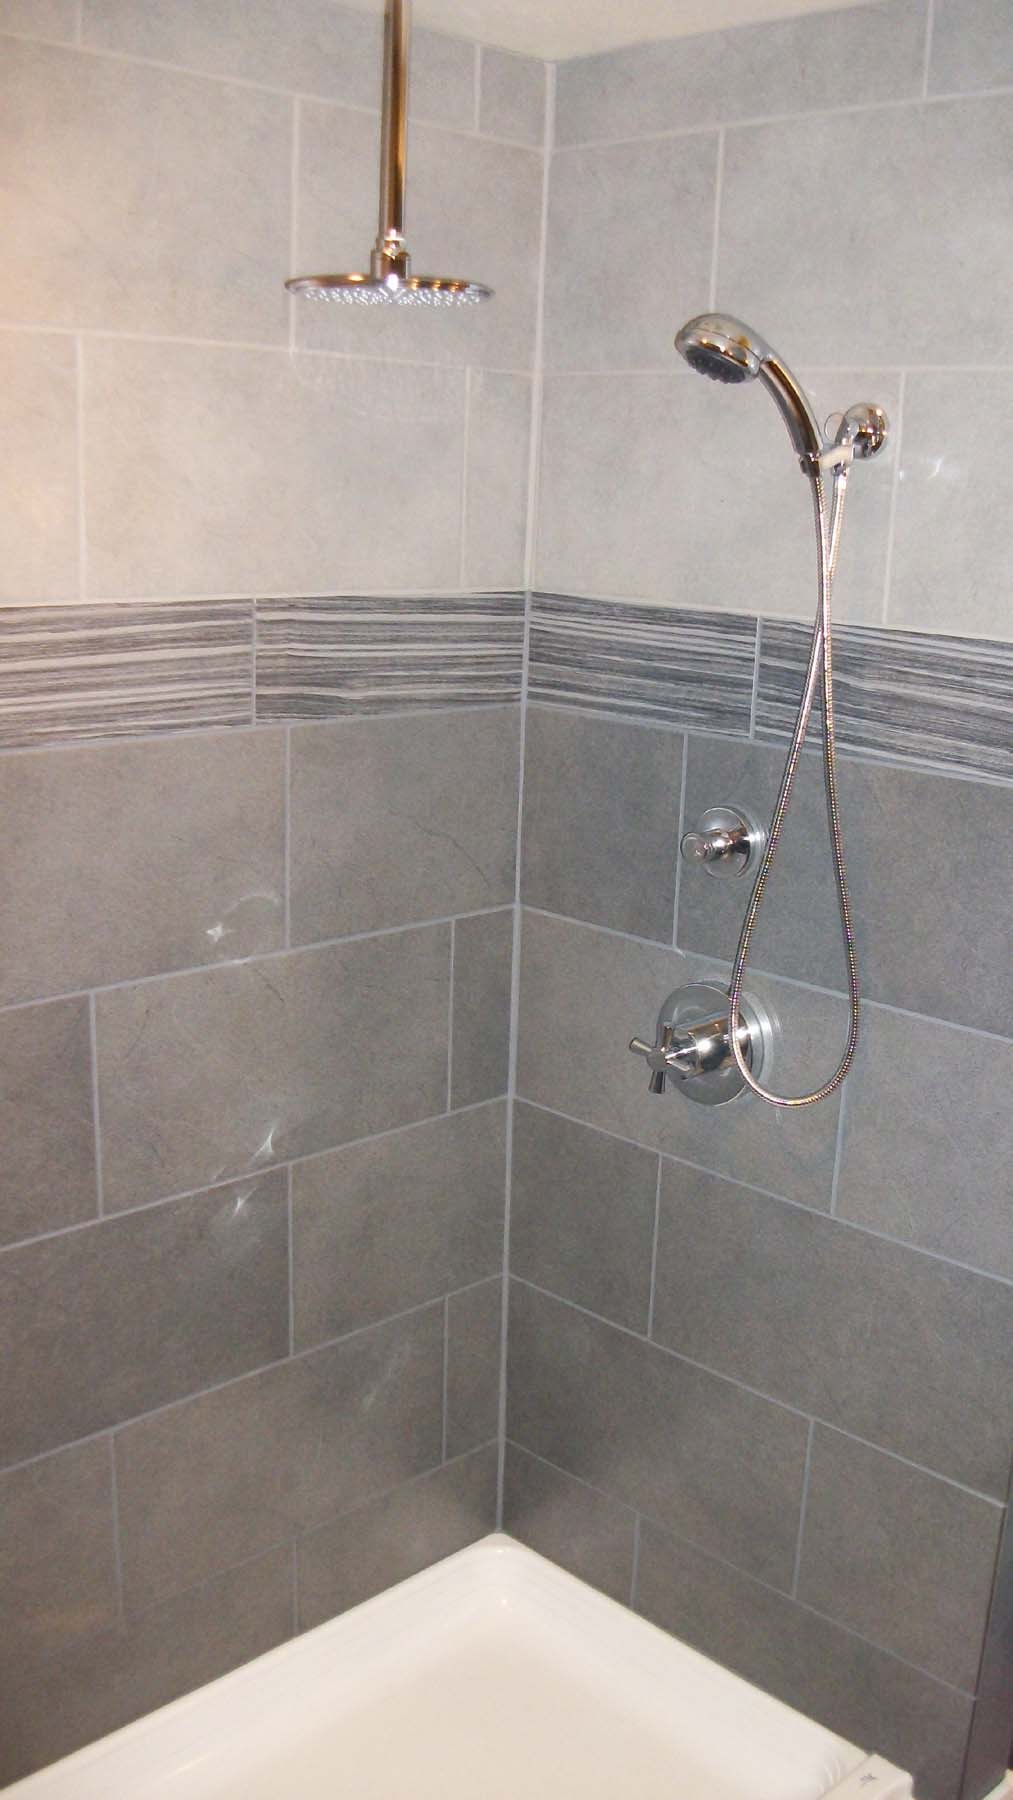 Wonderful shower tile and beautiful lavs